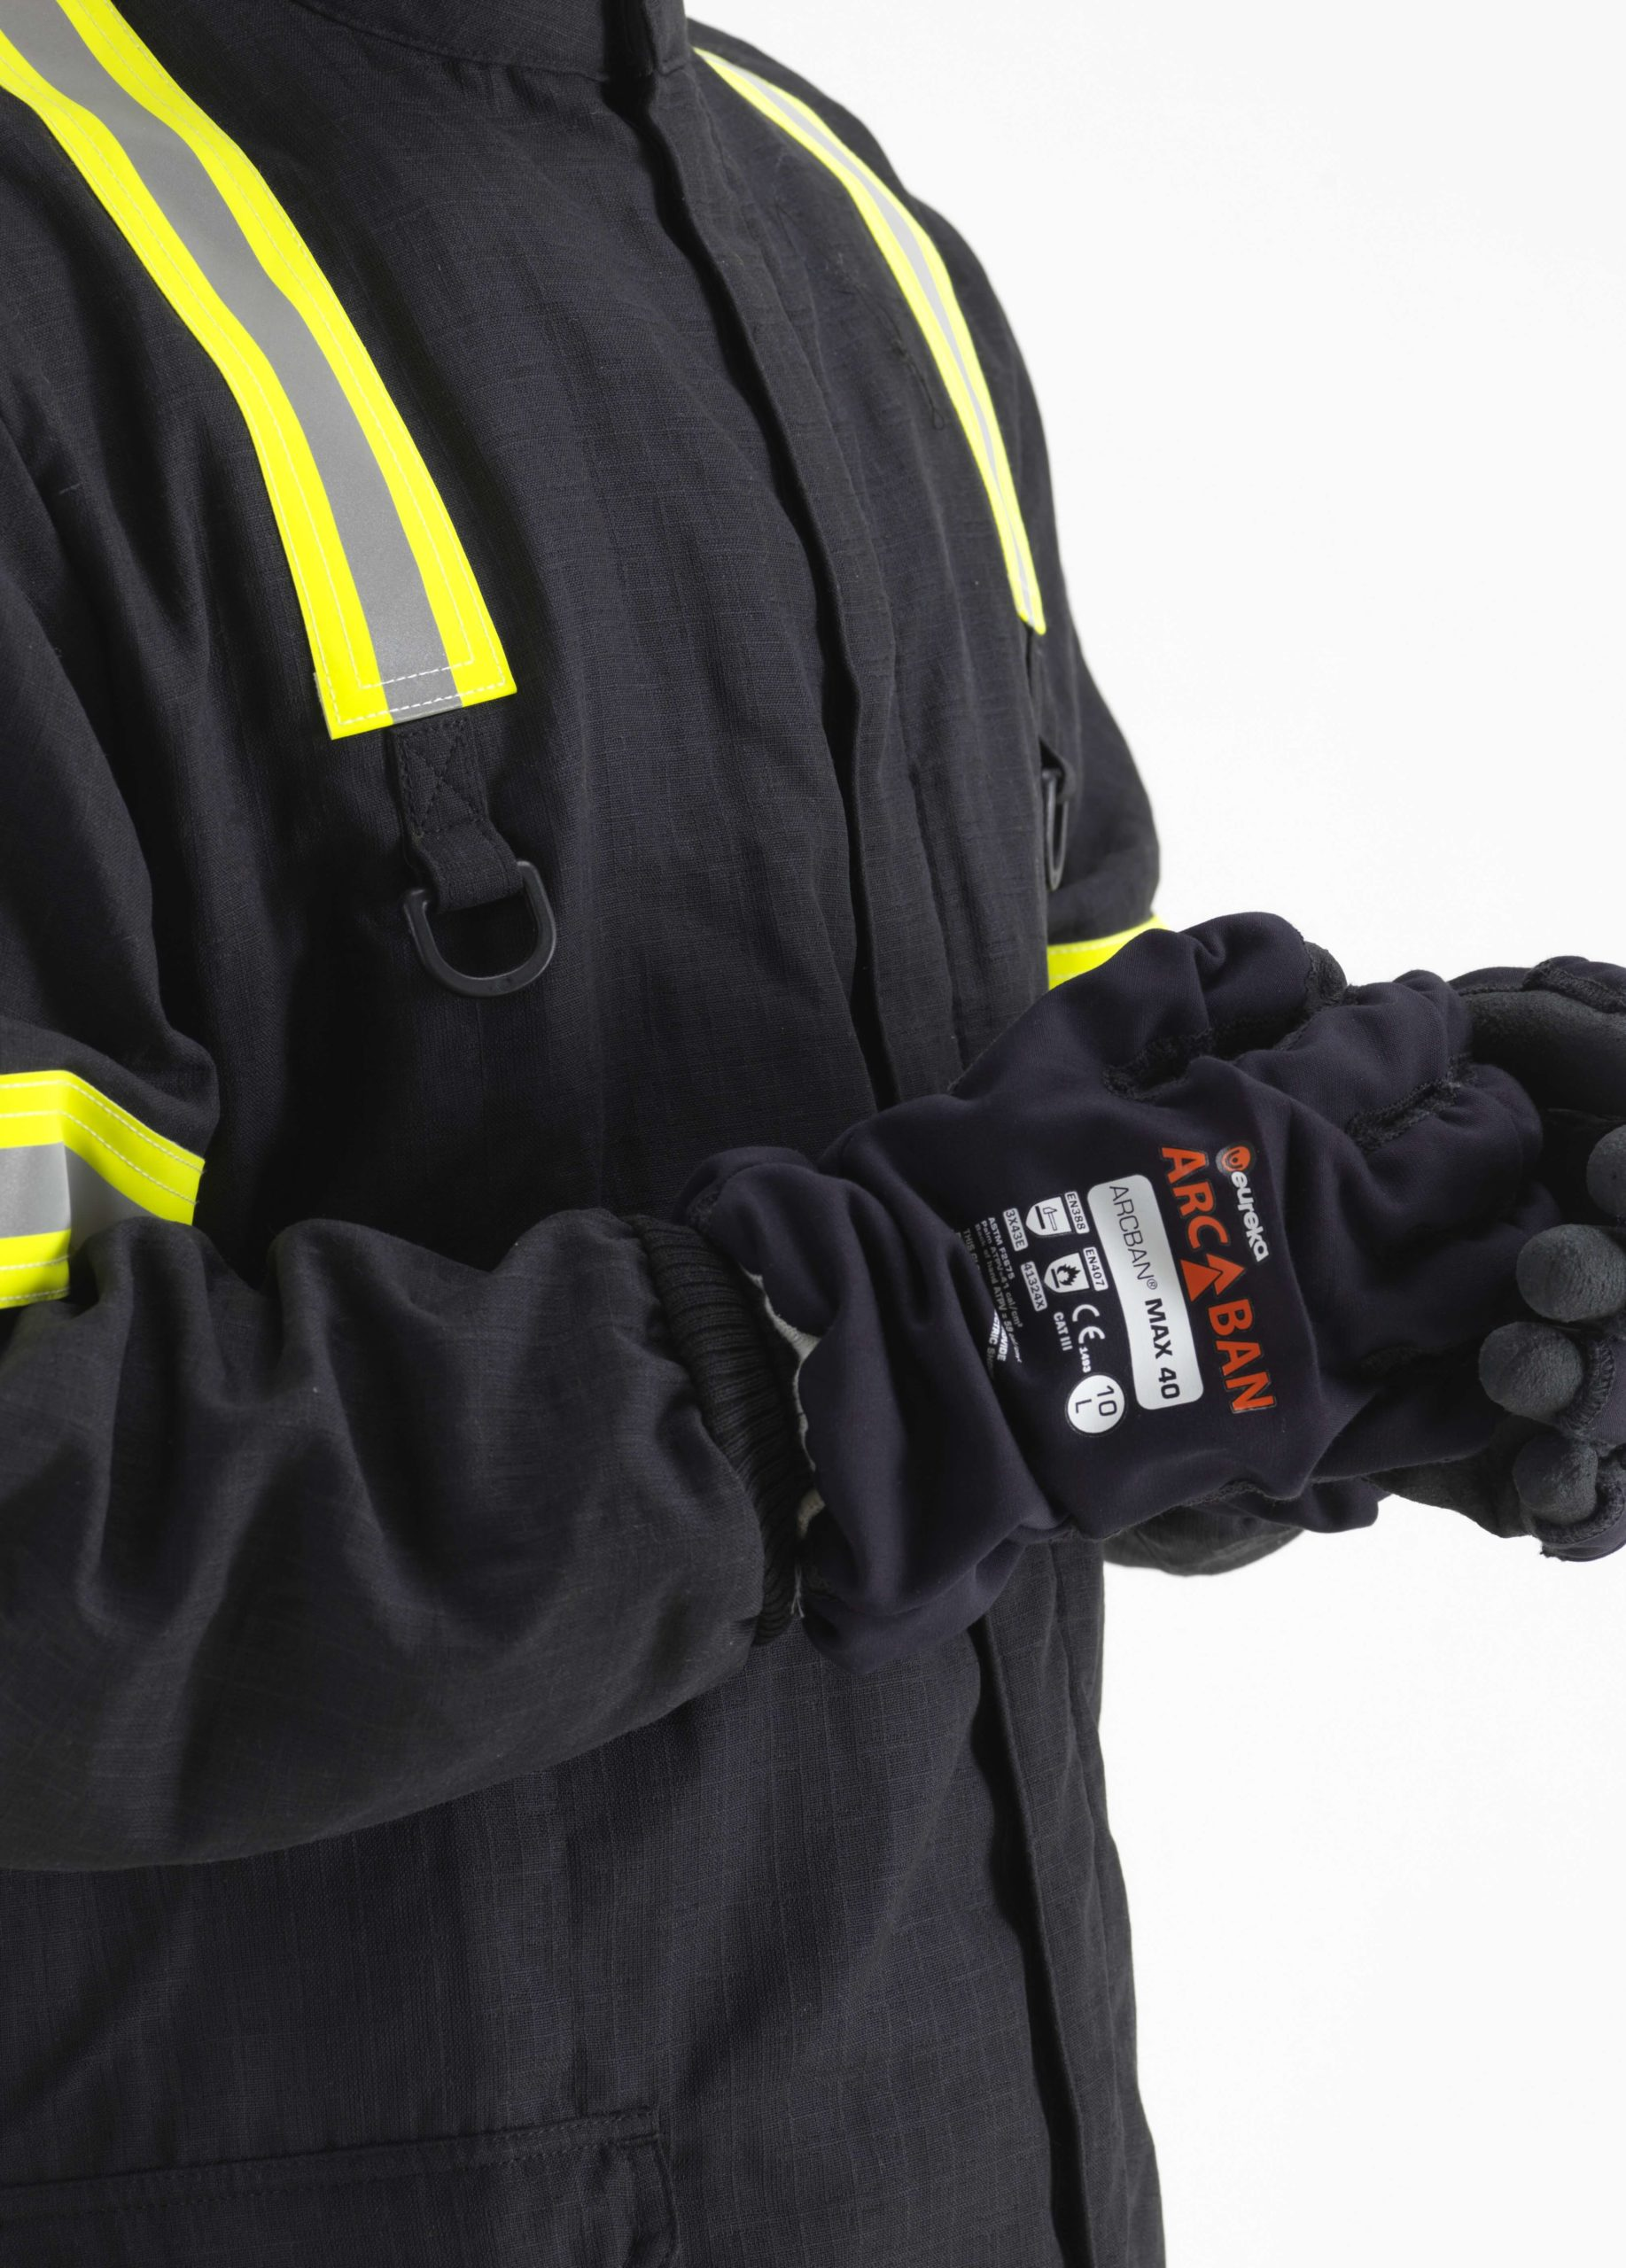 close up black Arcban Full Protective kit wrist cuffs and gloves